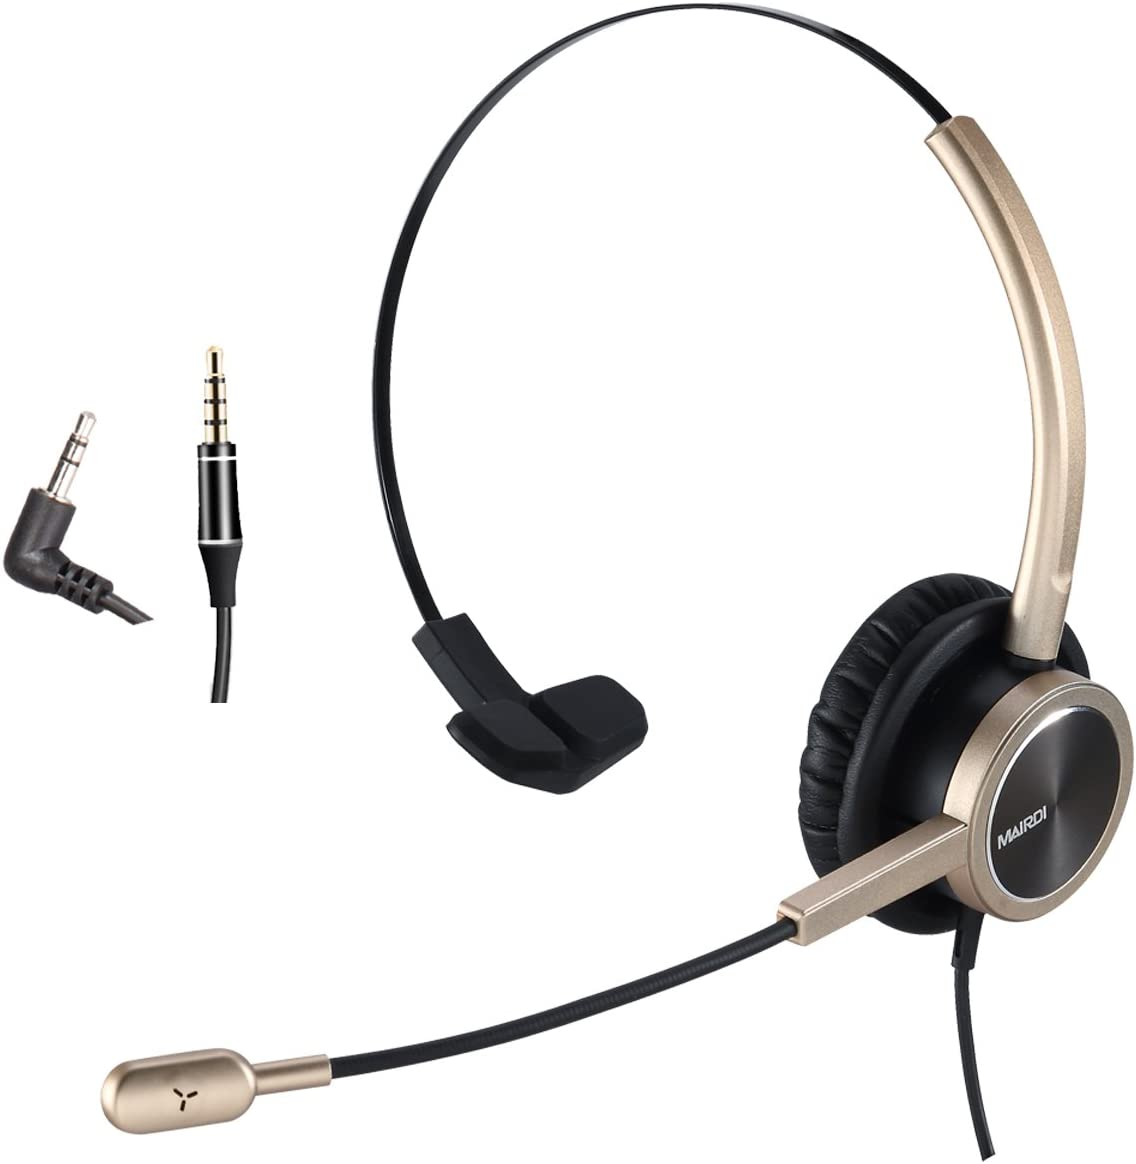 2.5mm Telephone Headset with Noise Cancelling Microphone for Jabra Cisco Polycom Panasonic Zultys Gigaset Including 3.5mm Connector for Mobiles